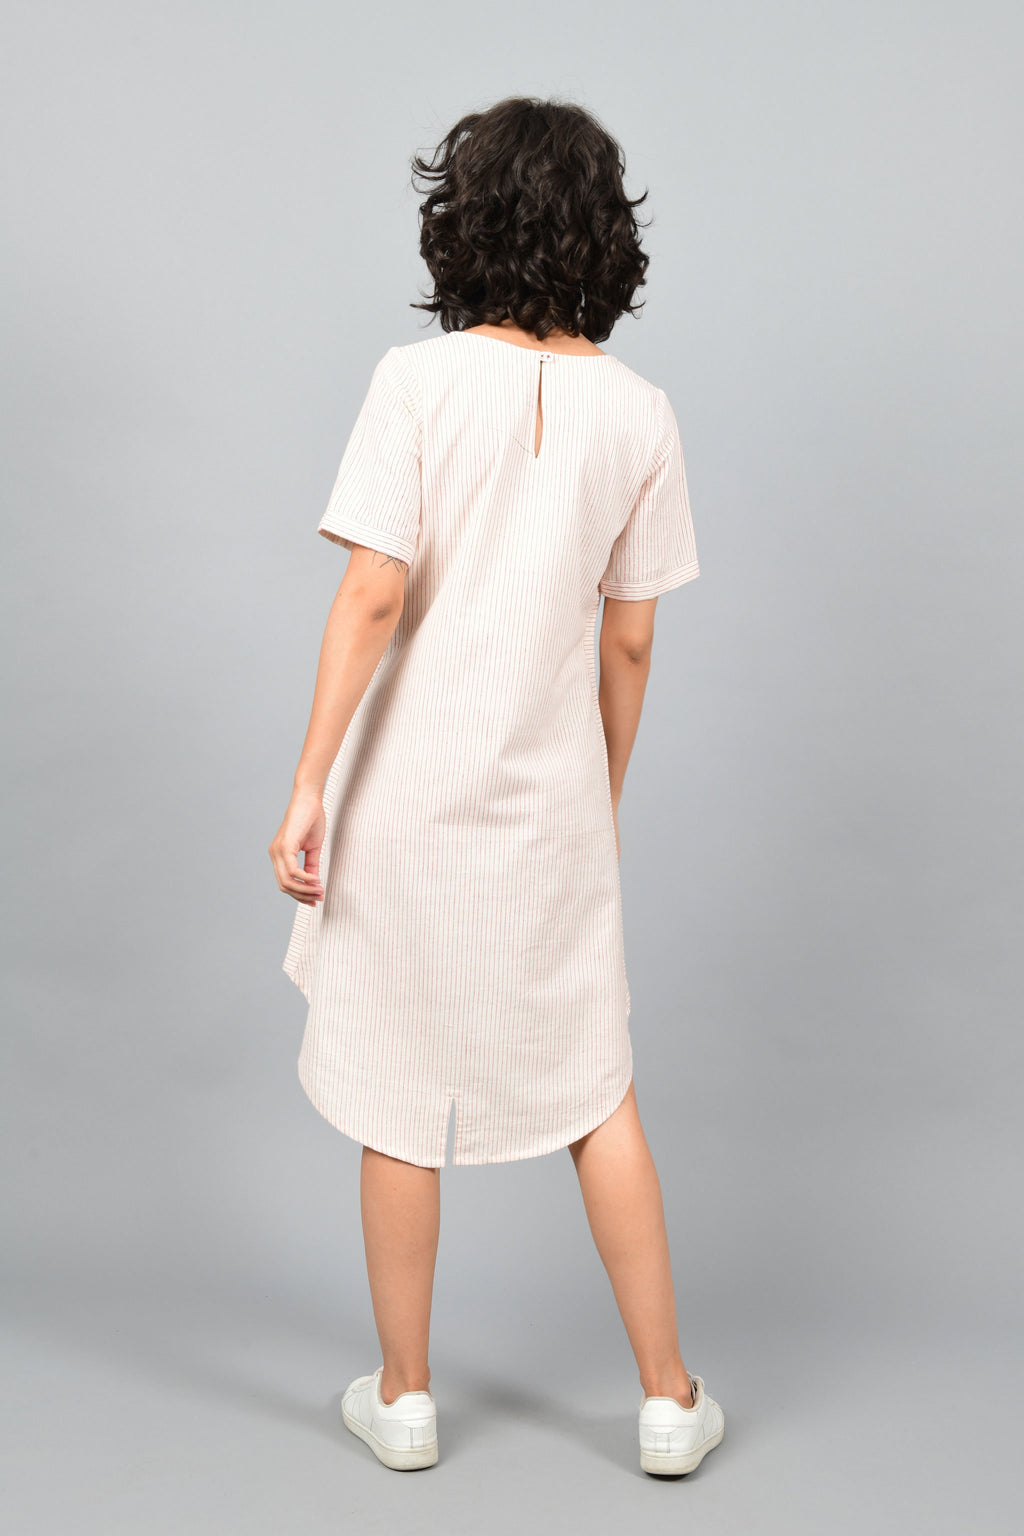 back of a female womenswear fashion model wearing a minimal a-line round bottom dress Cotton Rack printed with red stripes with side-seam details using brass block printing over handspun handwoven khadi cotton from maheshwar